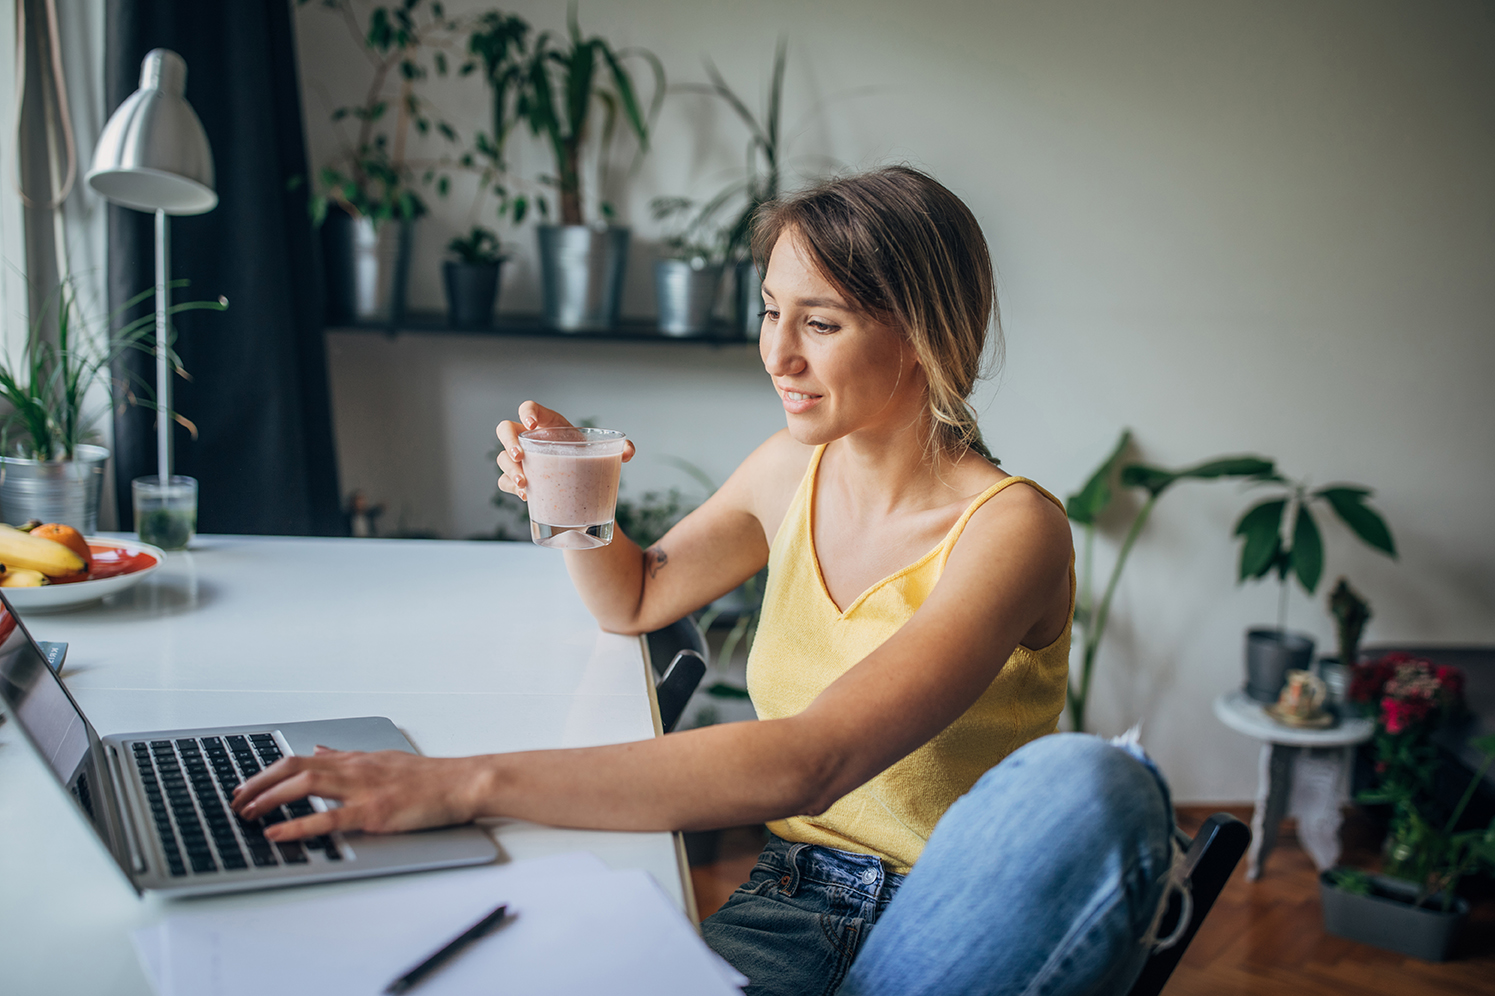 woman at table using laptop